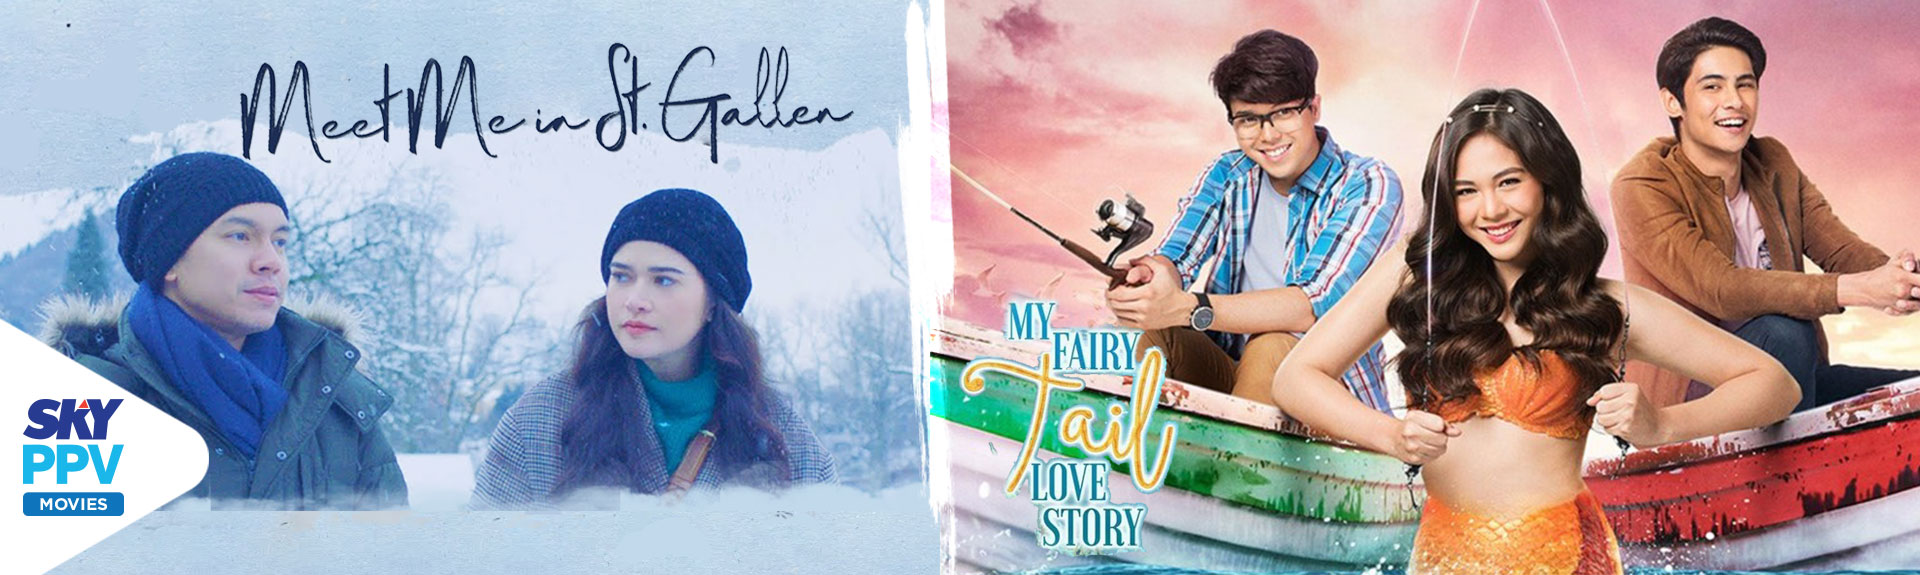 """My Fairy Tail Love Story""  and ""Meet Me in St. Gallen"" now on SKY Movies Pay-Per-View"